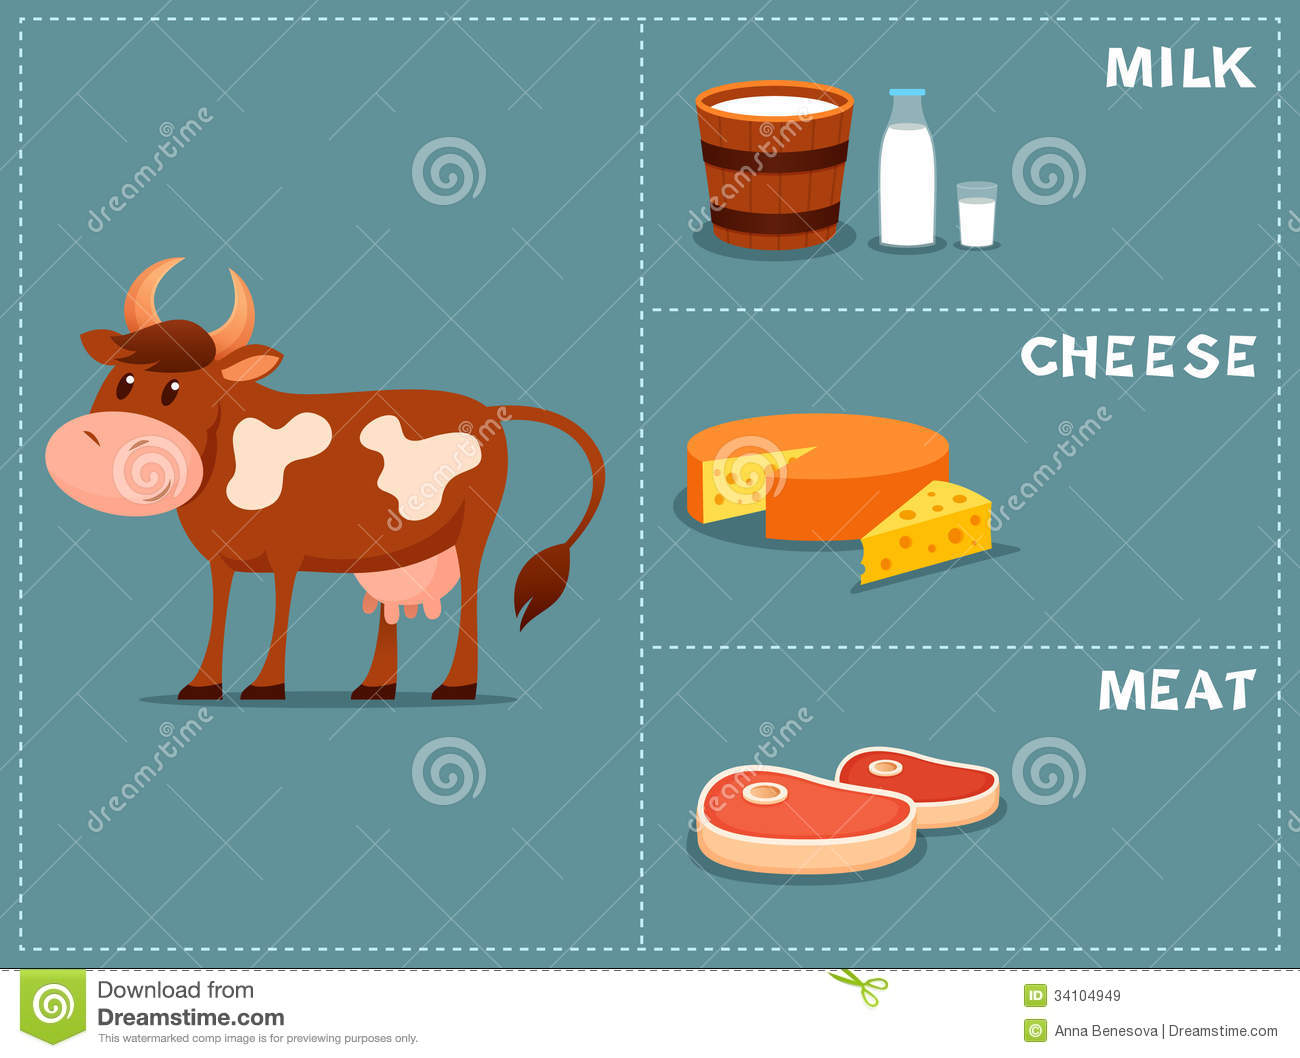 Cute Cartoon Illustration Of A Cow Royalty Free Stock